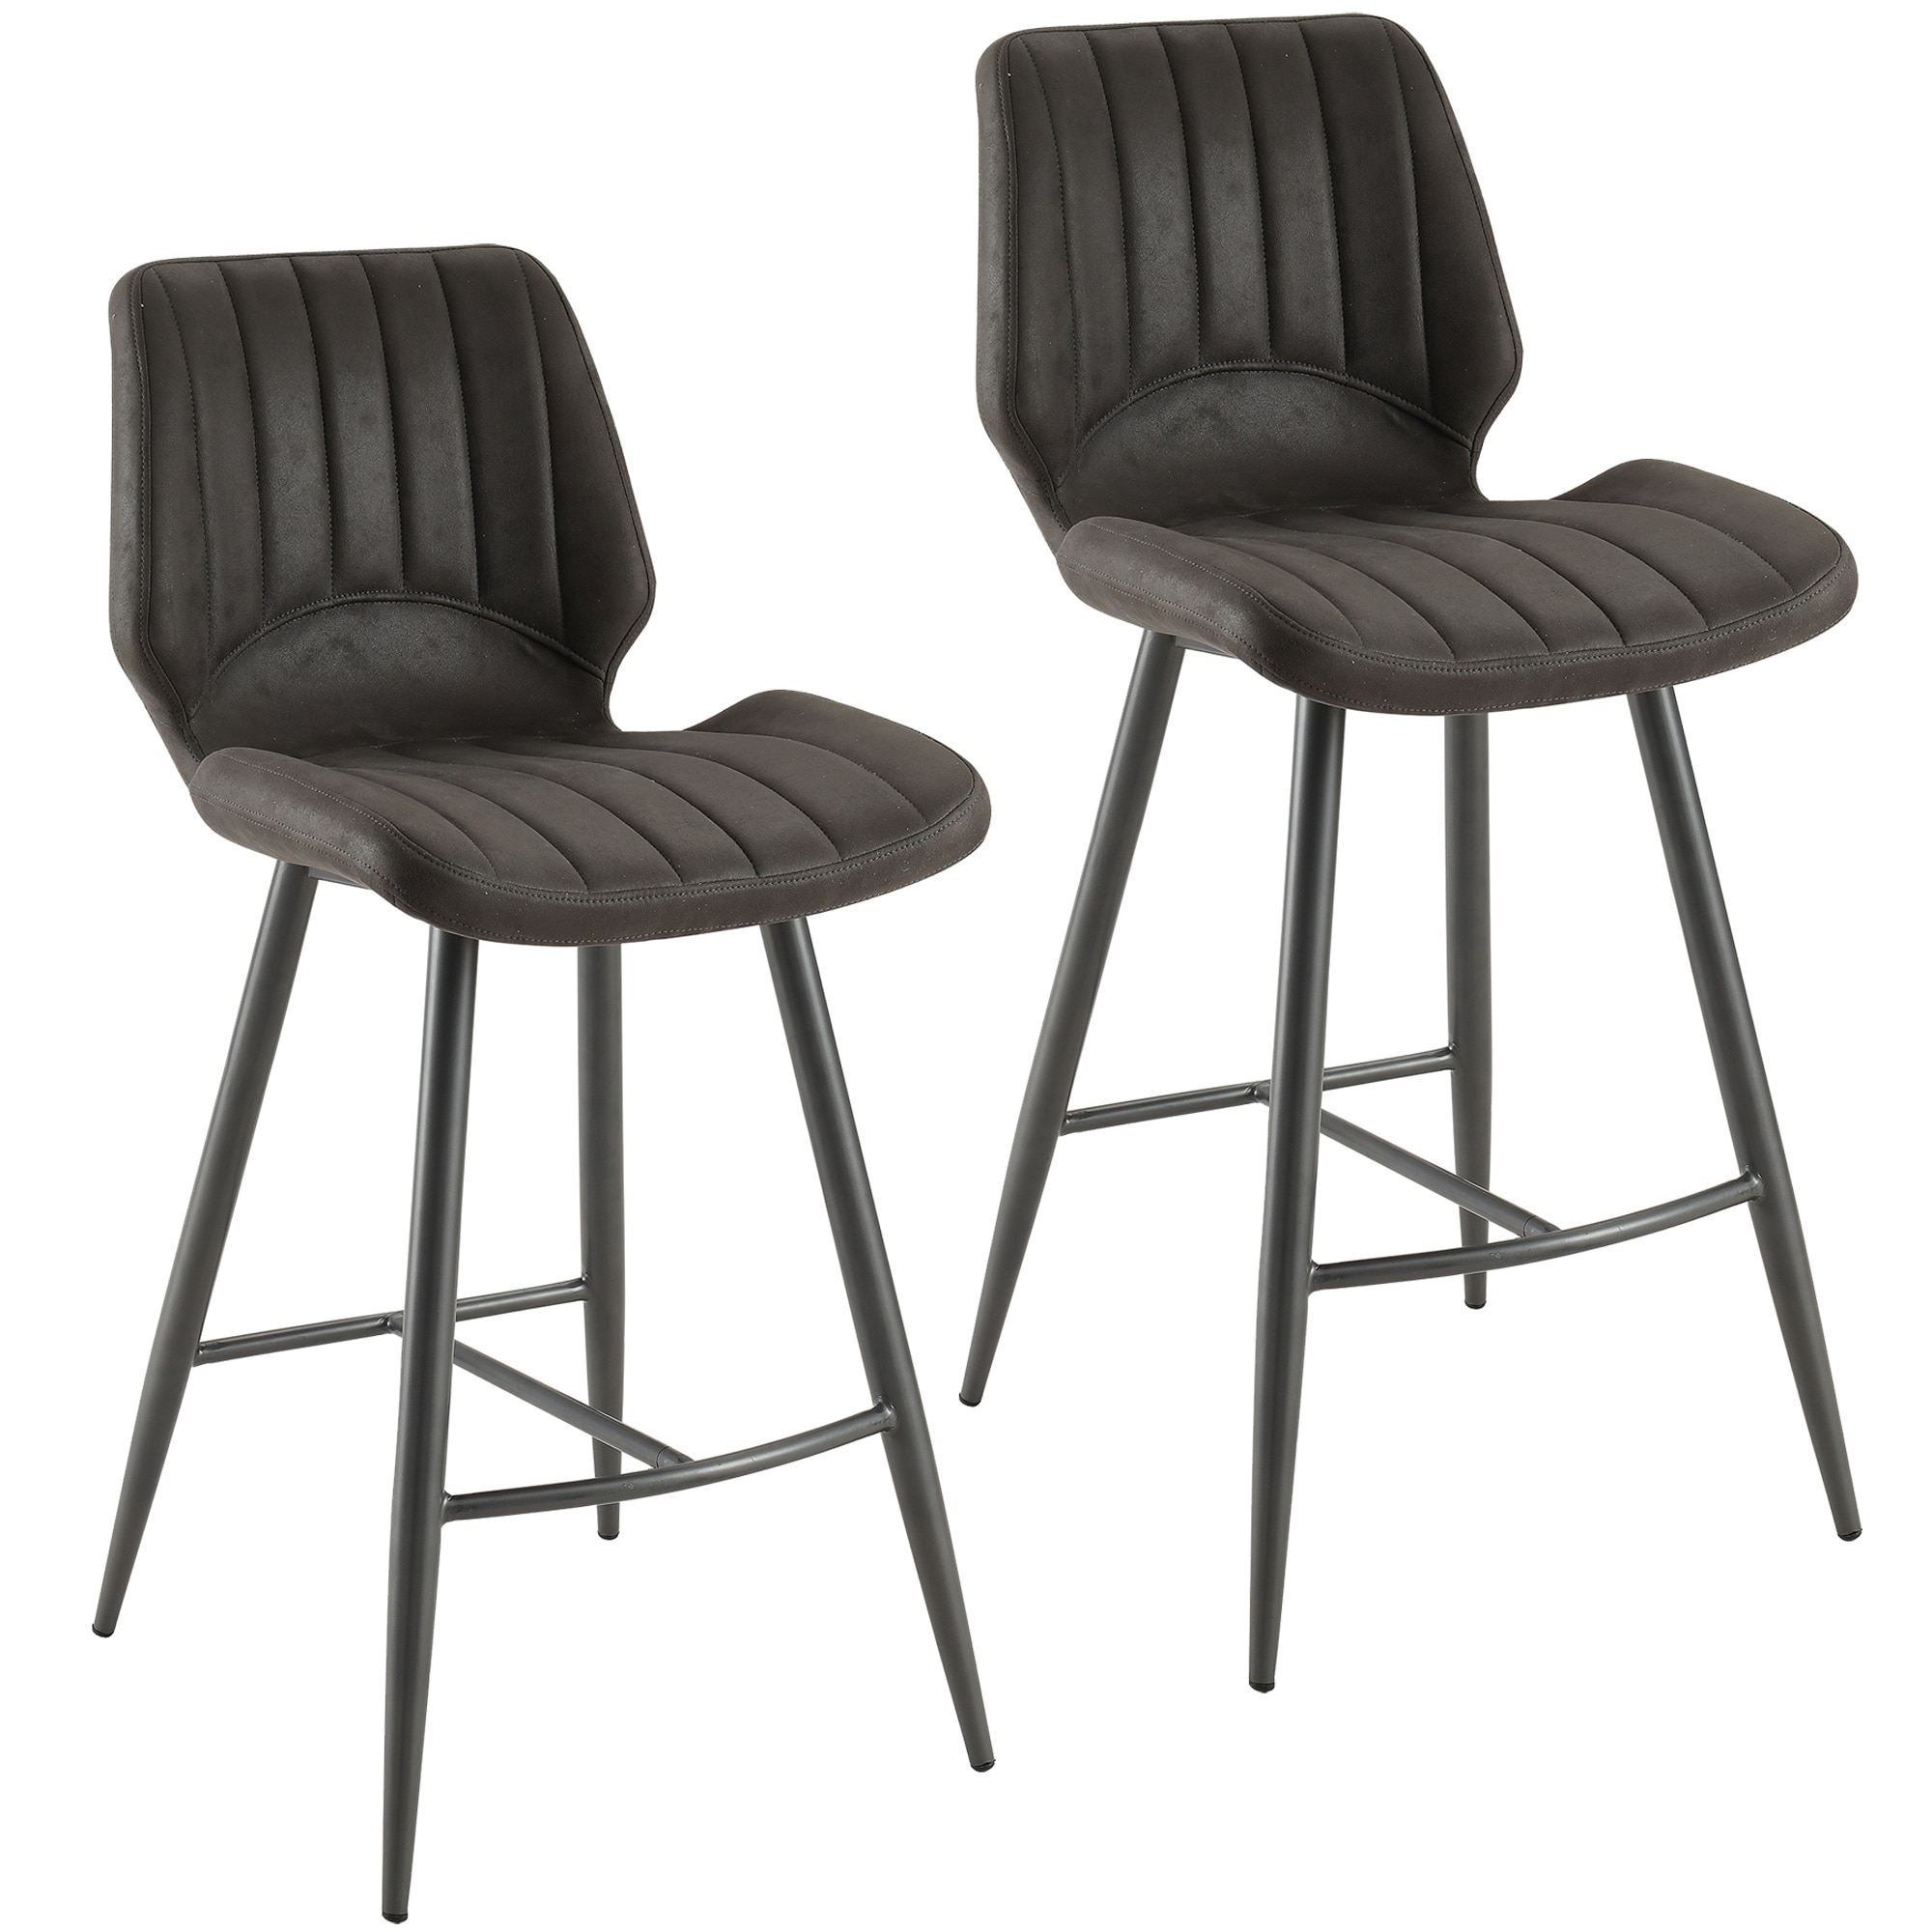 cheap for discount 455ad 2ddb5 Aspira-Faux Suede Counter Stool, Set of 2